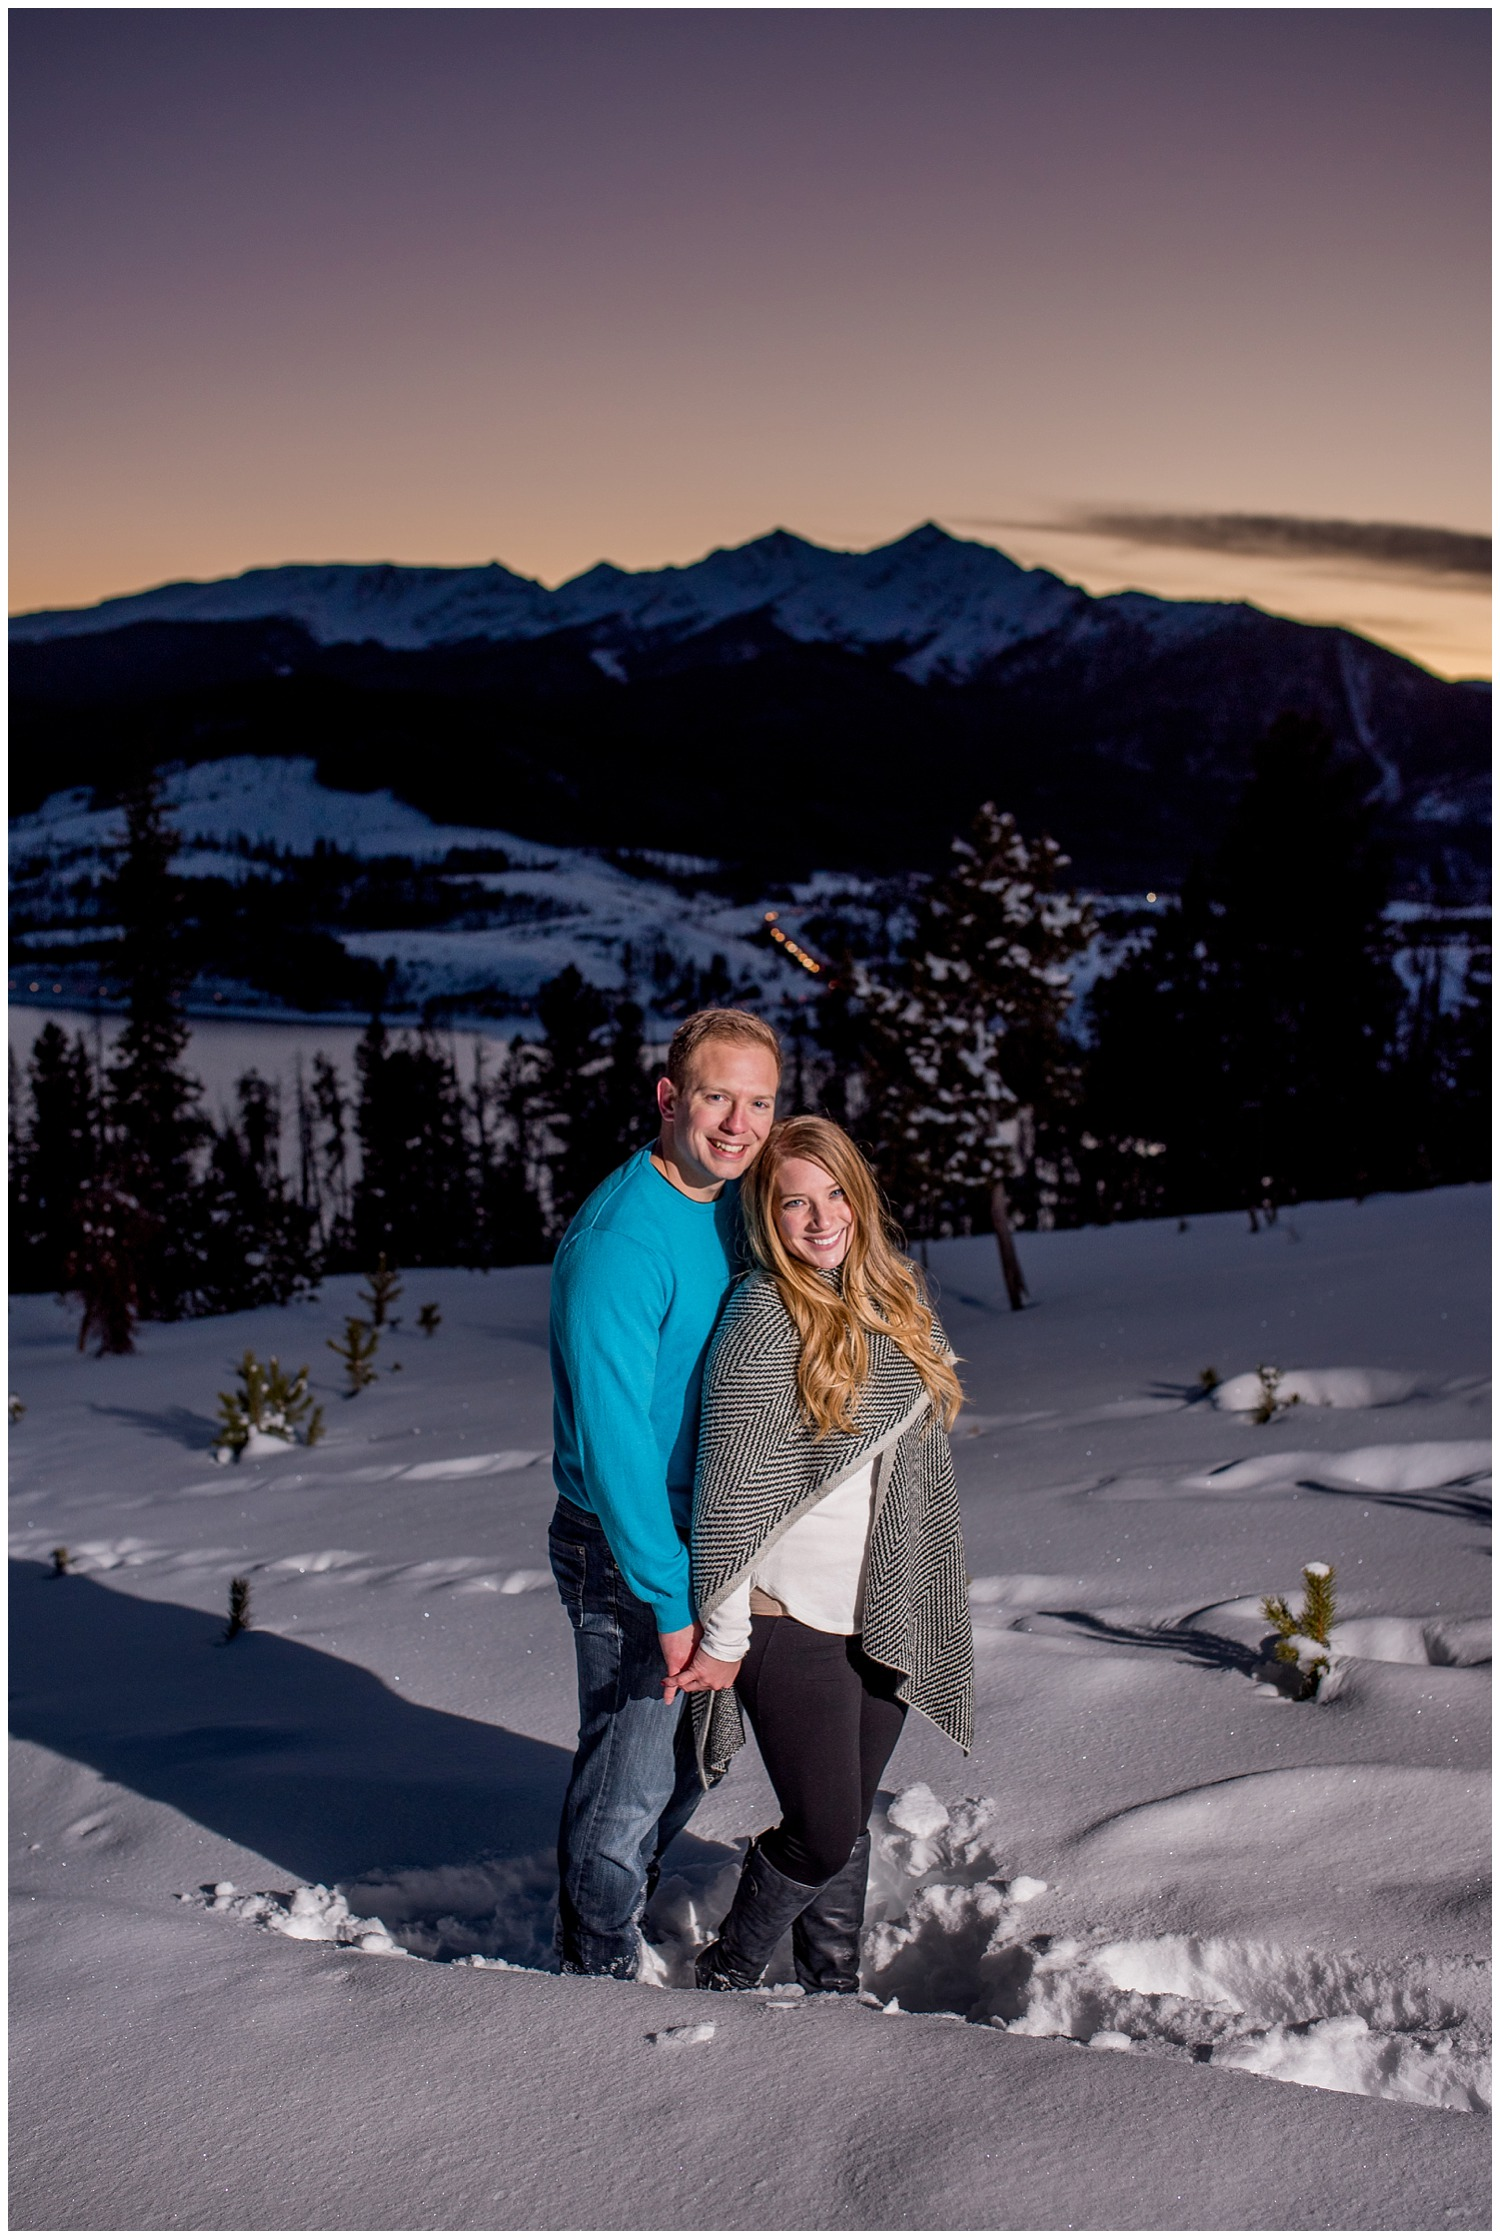 Sapphire-point-winter-engagement-photography_0023.jpg